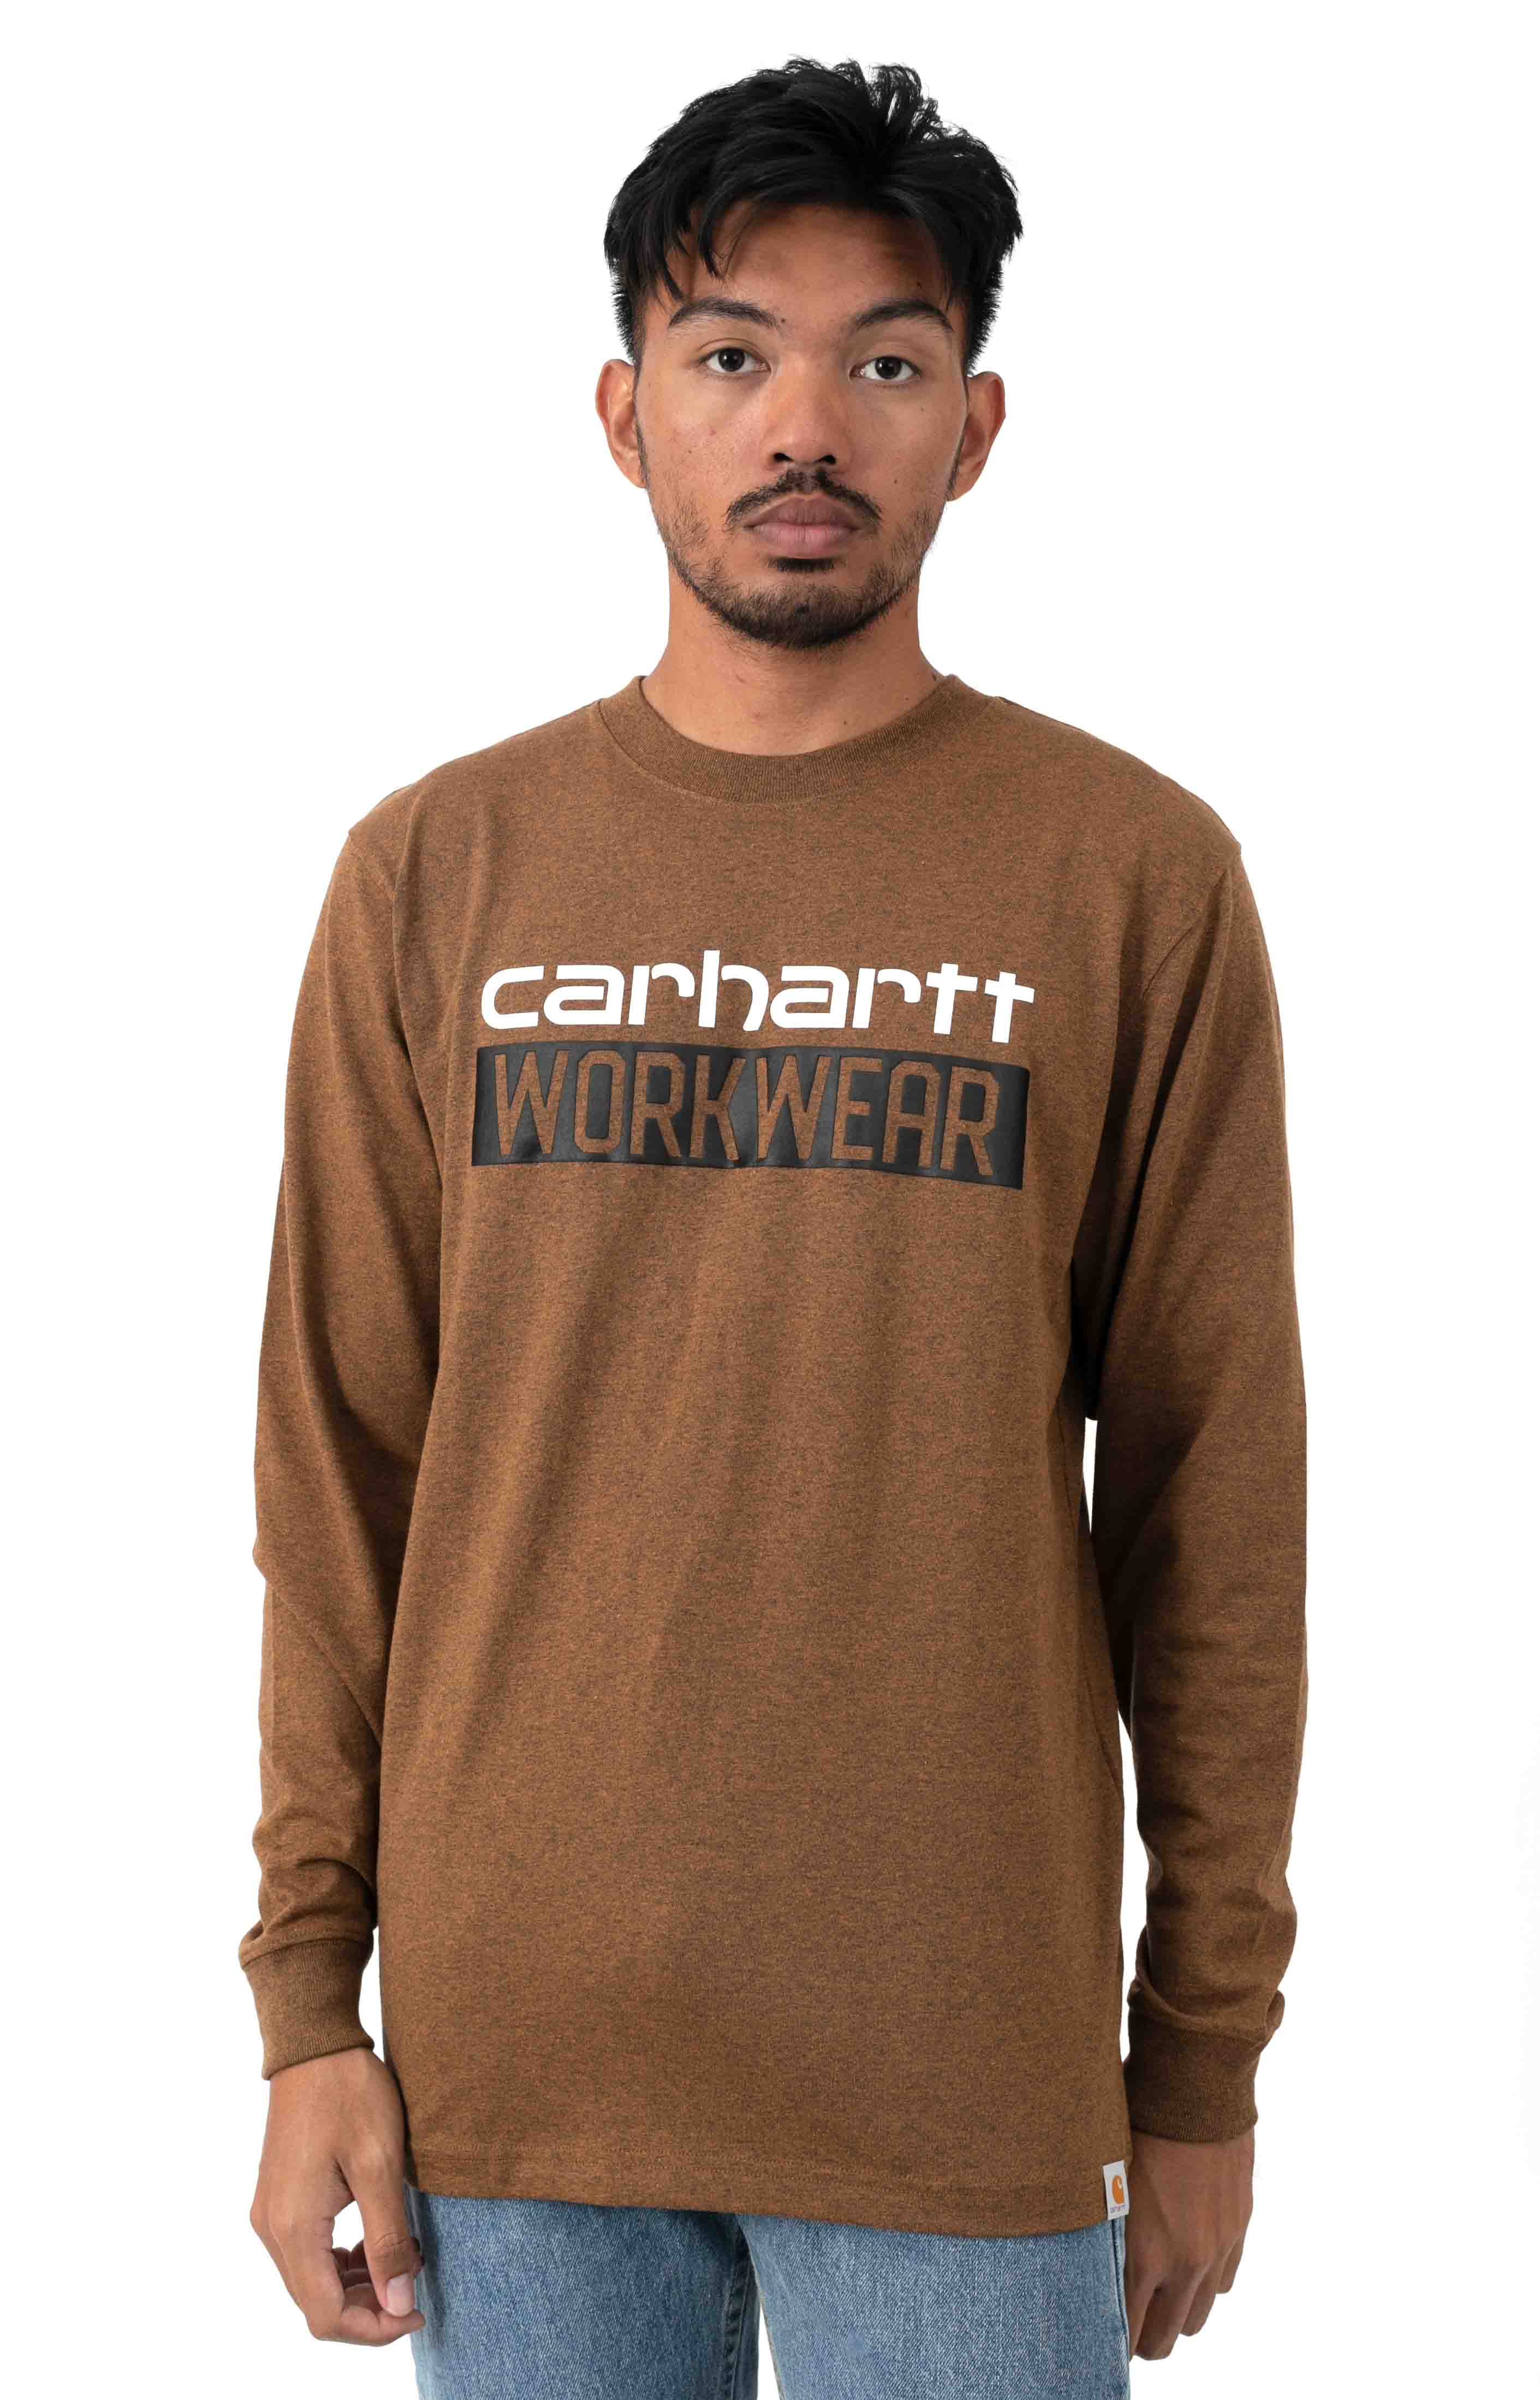 (104431) Original Fit HW L/S Workwear Graphic Shirt - Oiled Walnut Heather